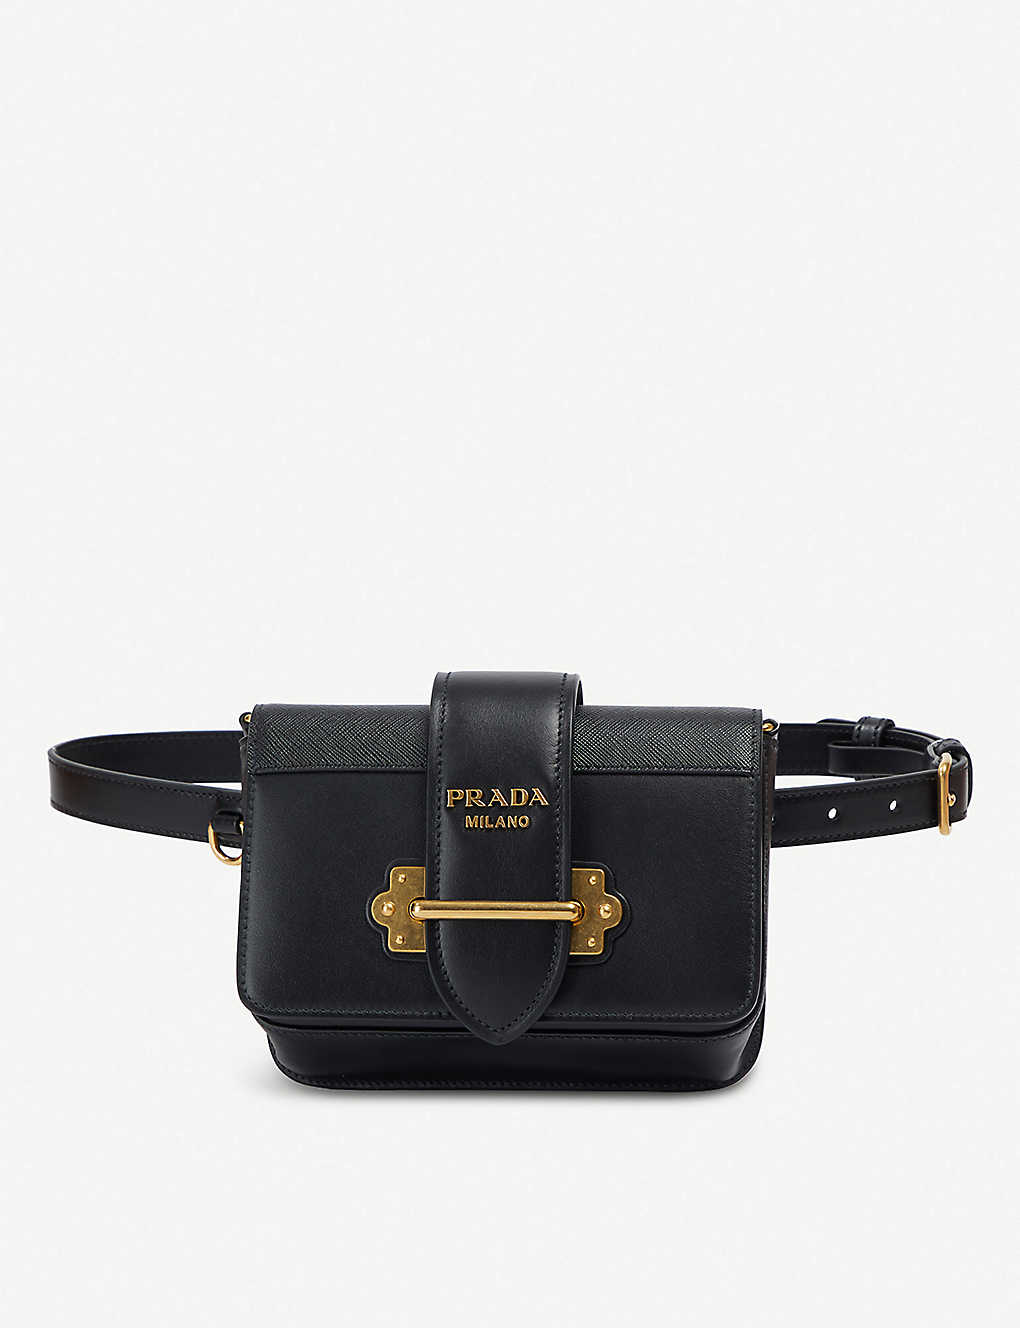 37d7a8aabcdac PRADA - Cahier logo-plaque leather belt bag